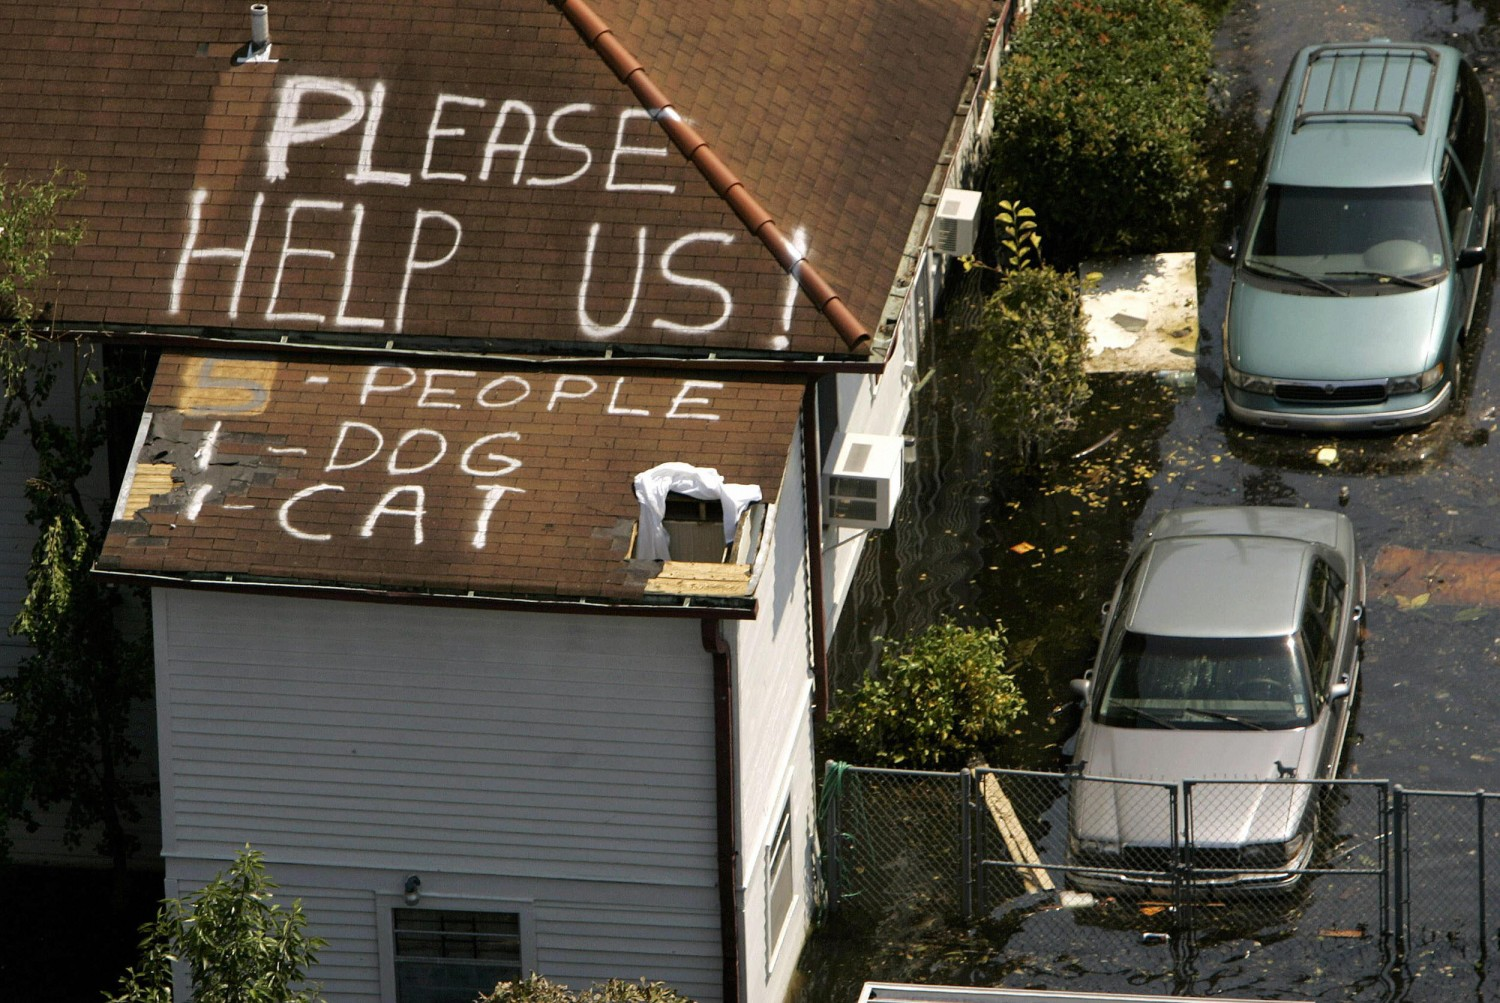 Rooftop graffiti following Hurricane Katrina. Source: katrina,weather.com.